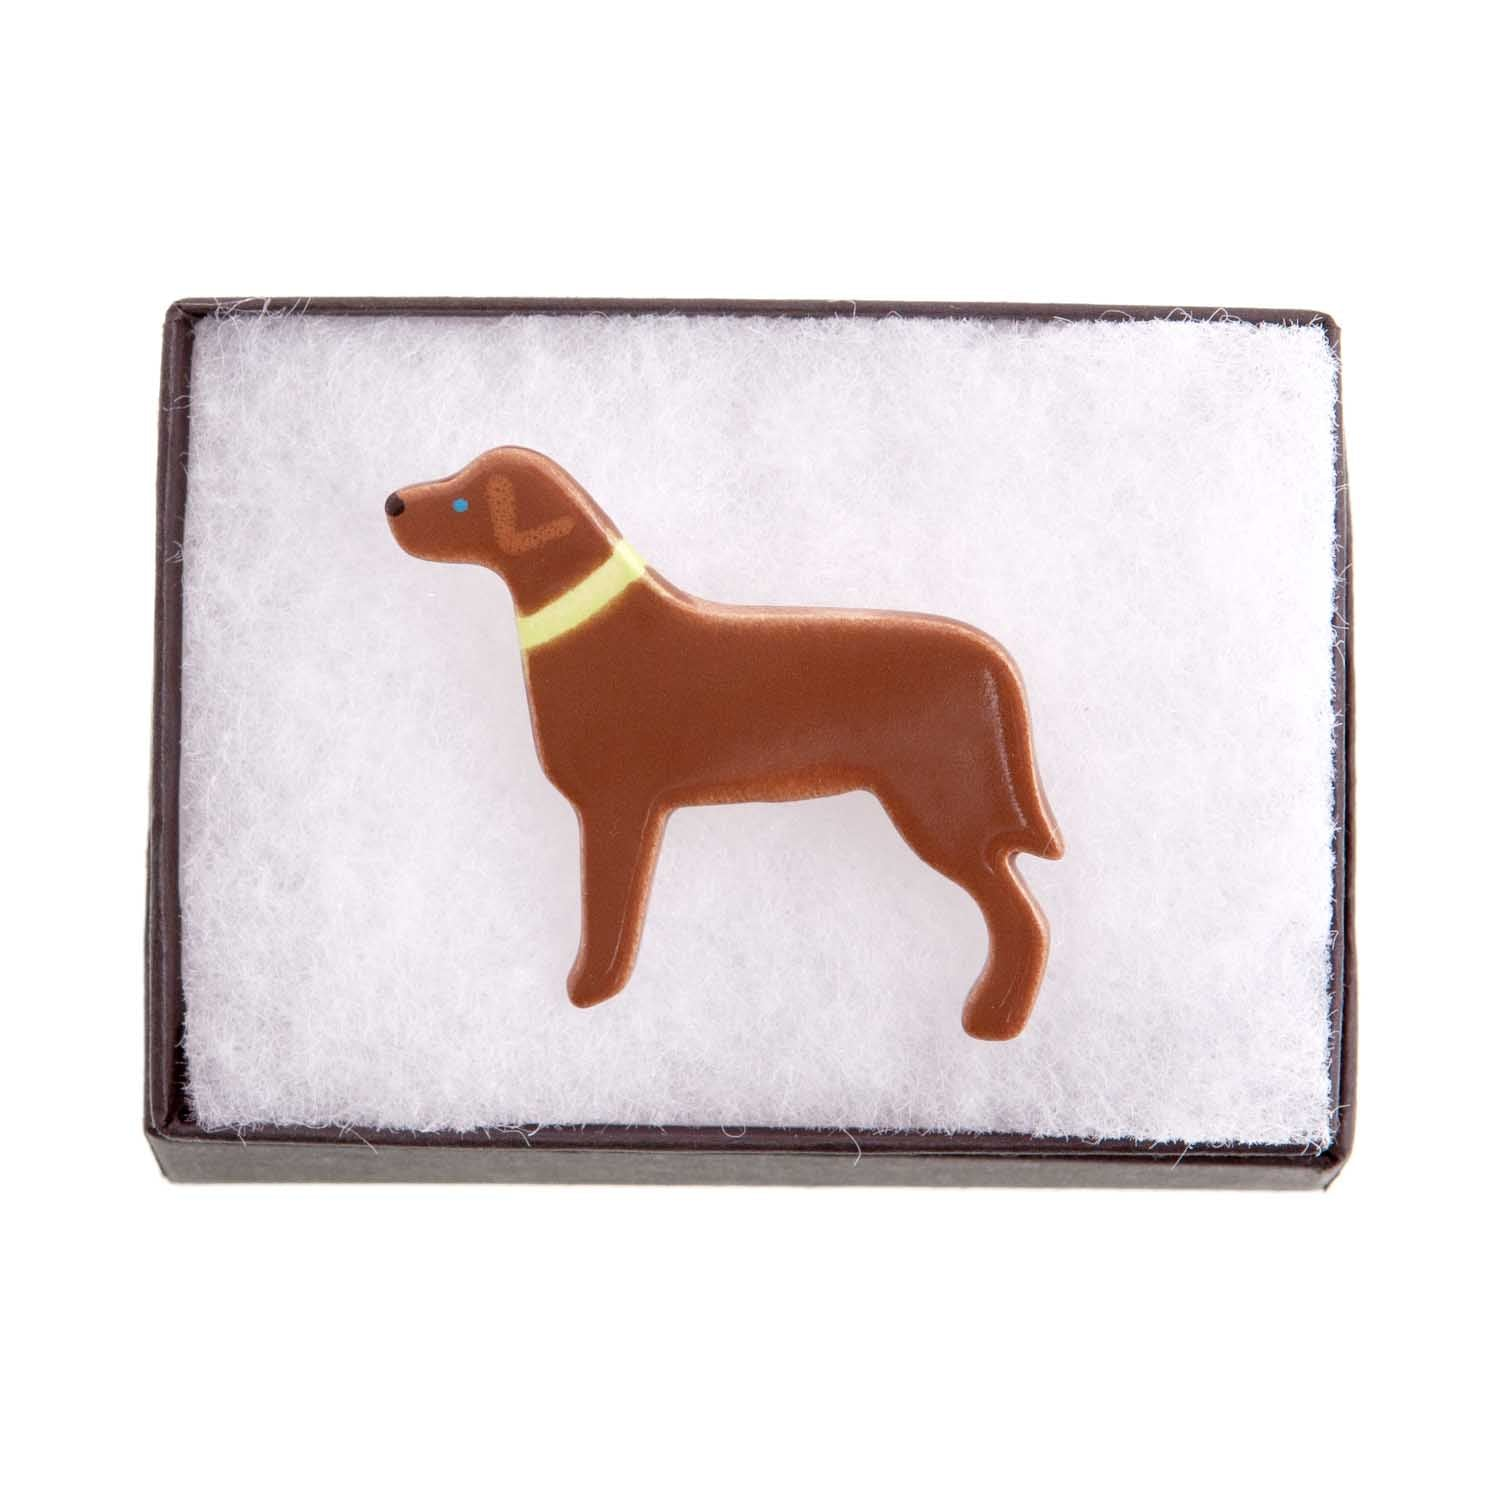 Dog Lover Gifts available at Dog Krazy Gifts – Ceramic Chocolate Labrador Brooch by Mary Goldberg of Stockwell Ceramics, Just Part Of Our Collection Of Labrador Themed Gifts, Available At www.dogkrazygifts.co.uk